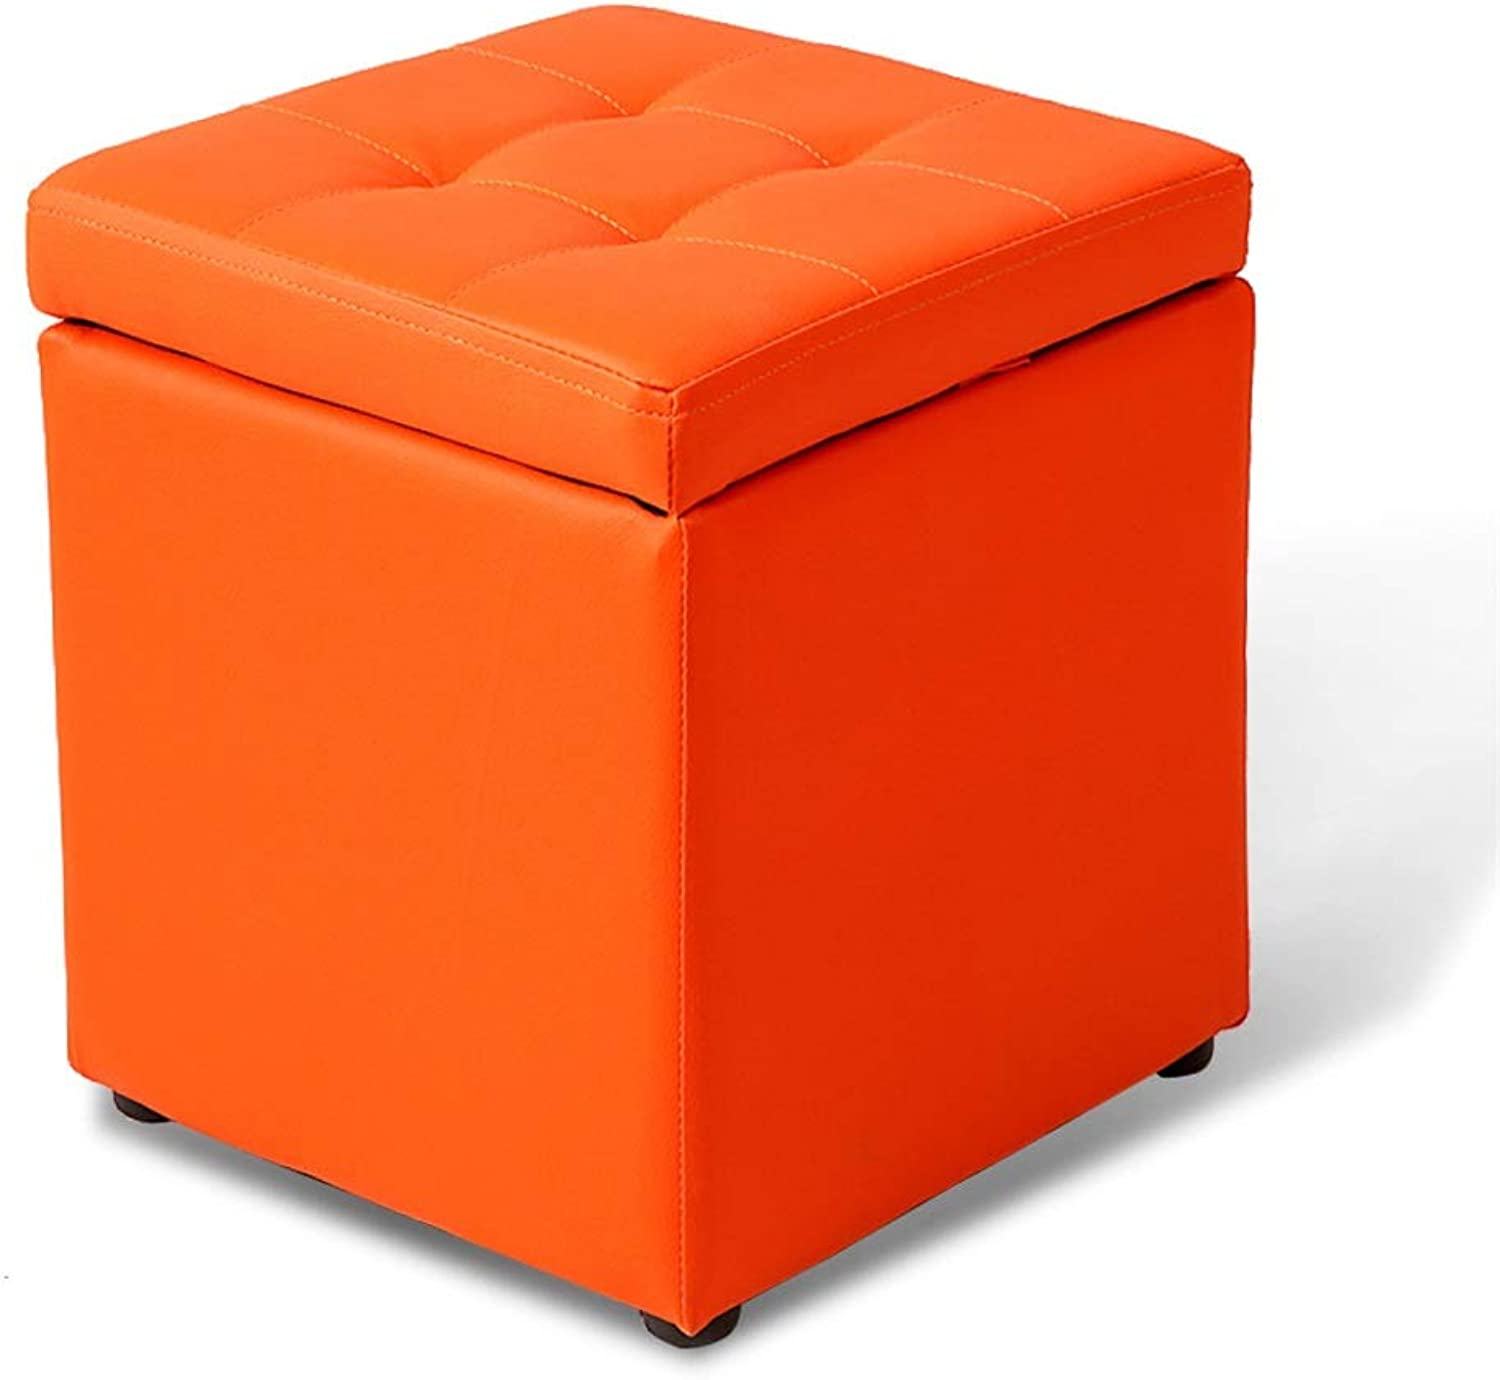 Stool, Fashion Creative Sofa Stool Leather Stool Change shoes Bench Square Stool Storage Stool Living Room Footstool (color   A)